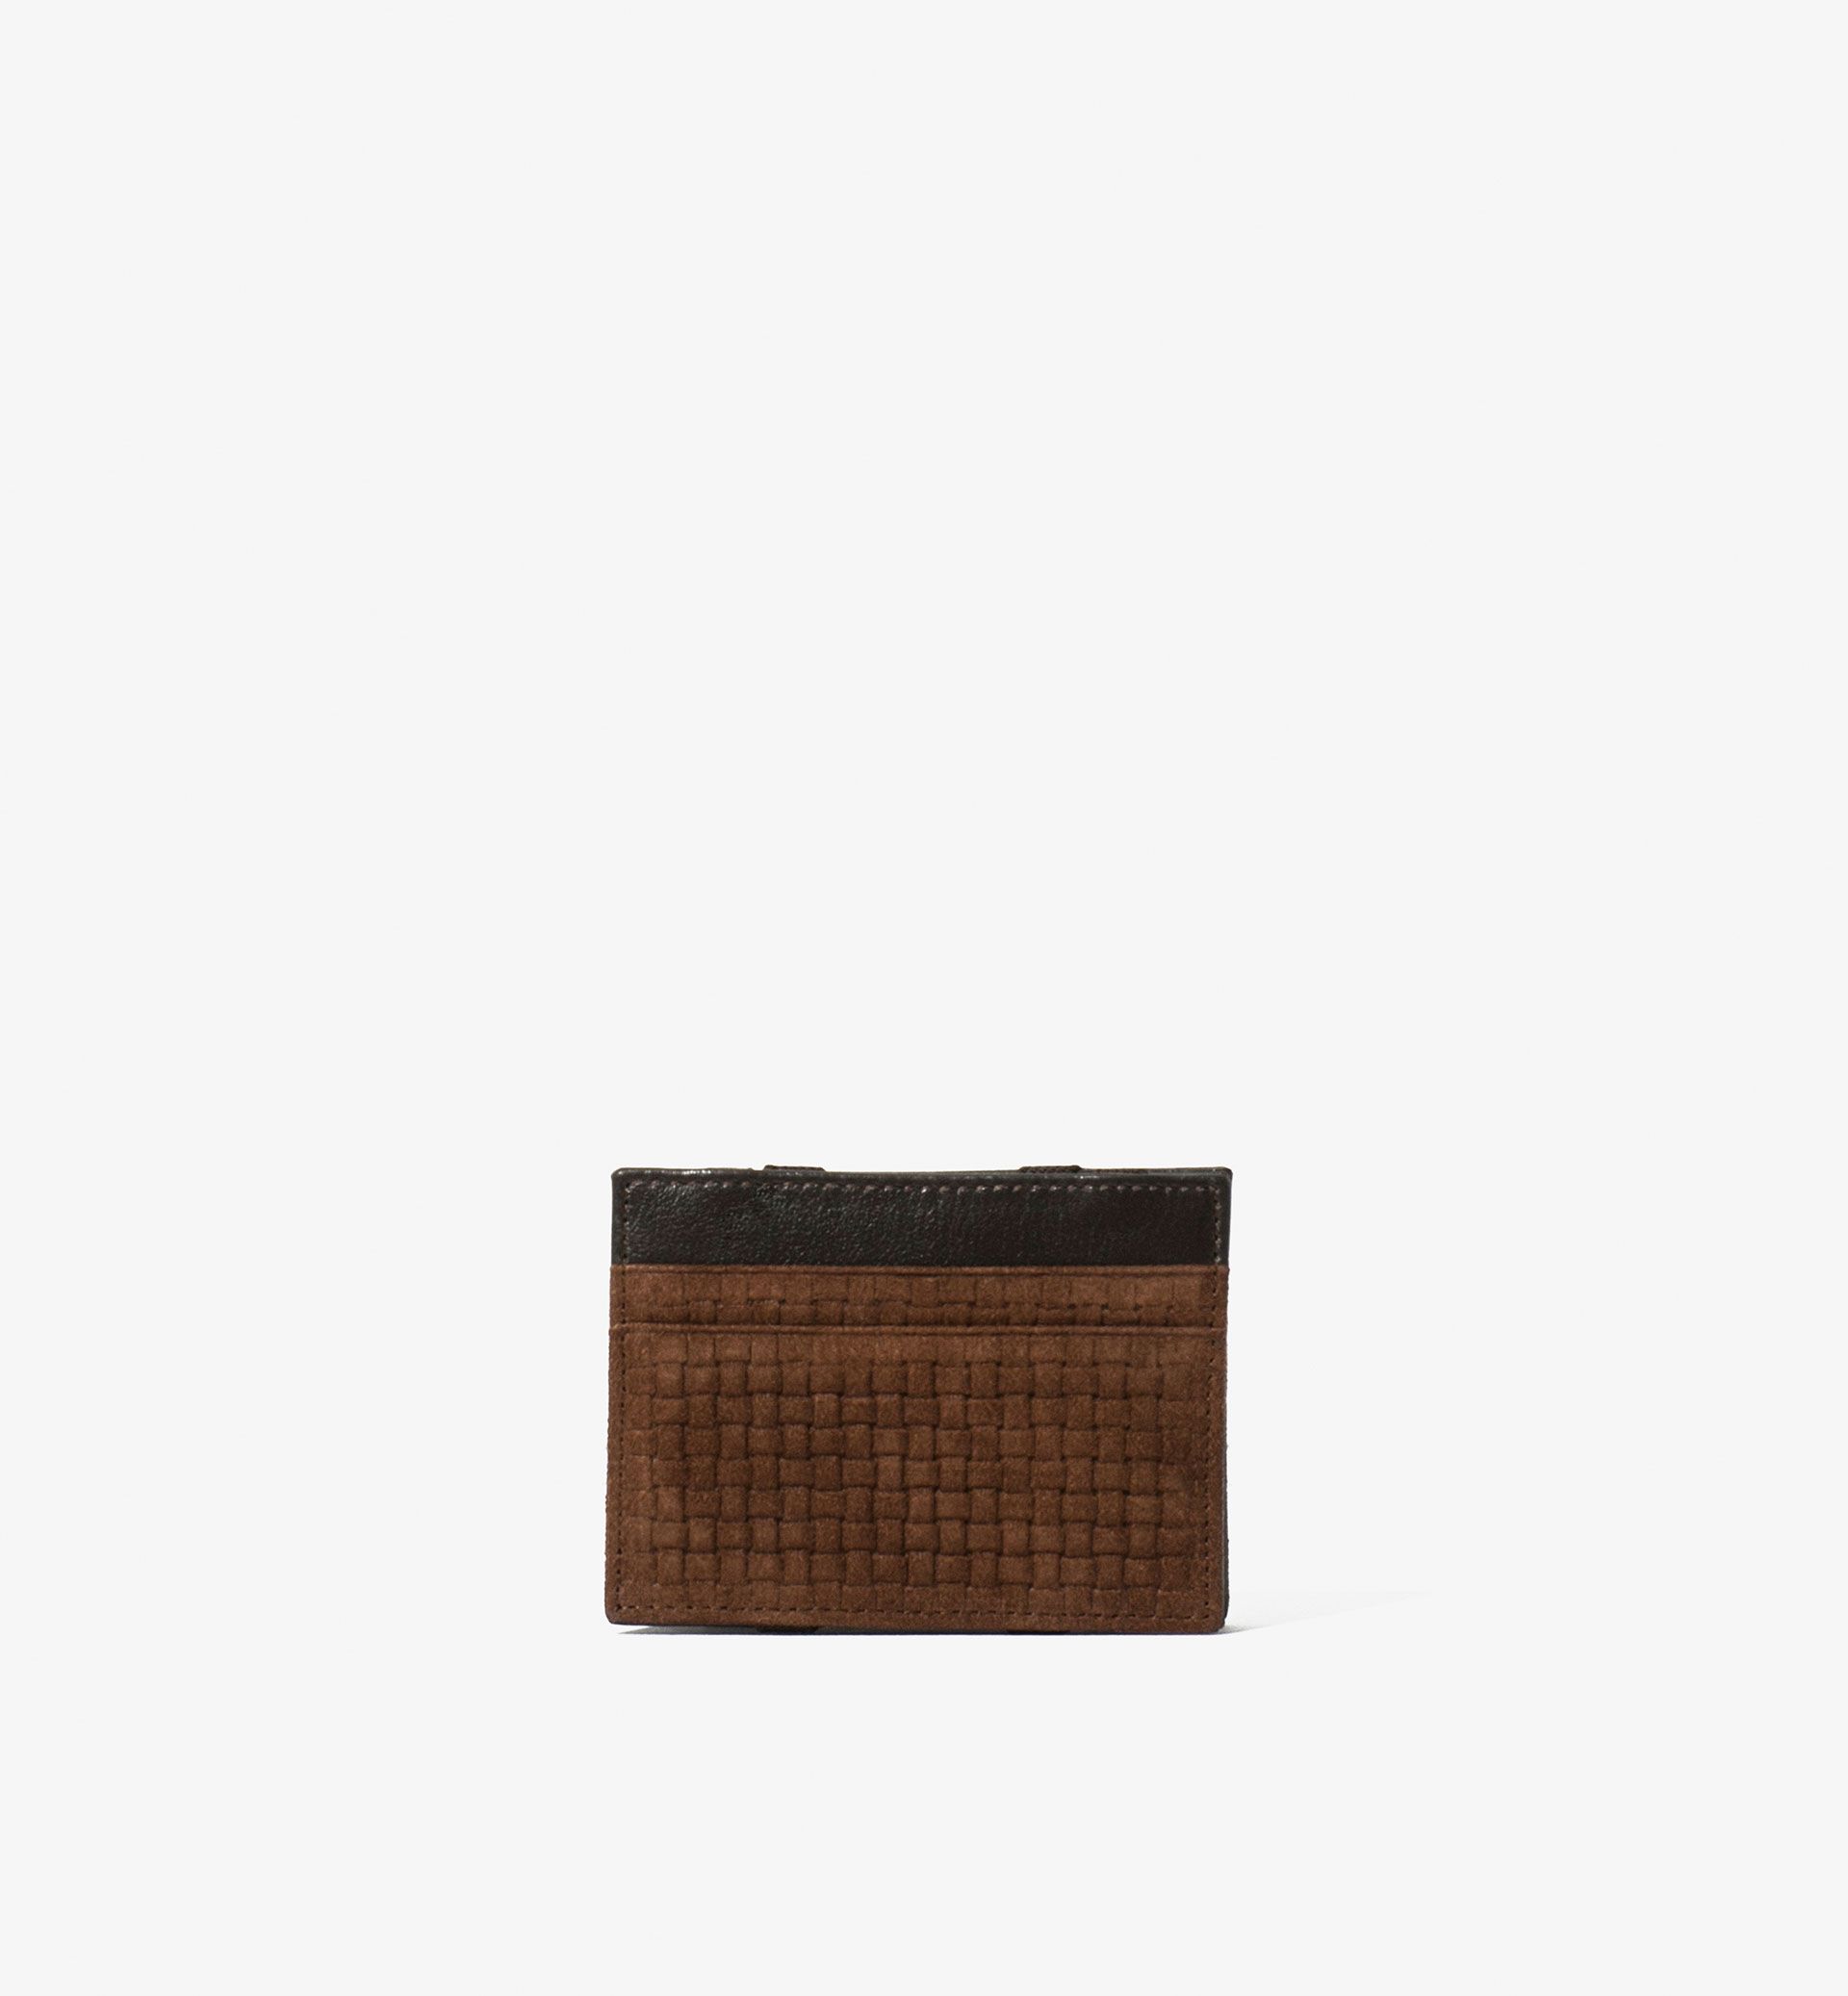 BRAIDED LEATHER CARD HOLDER